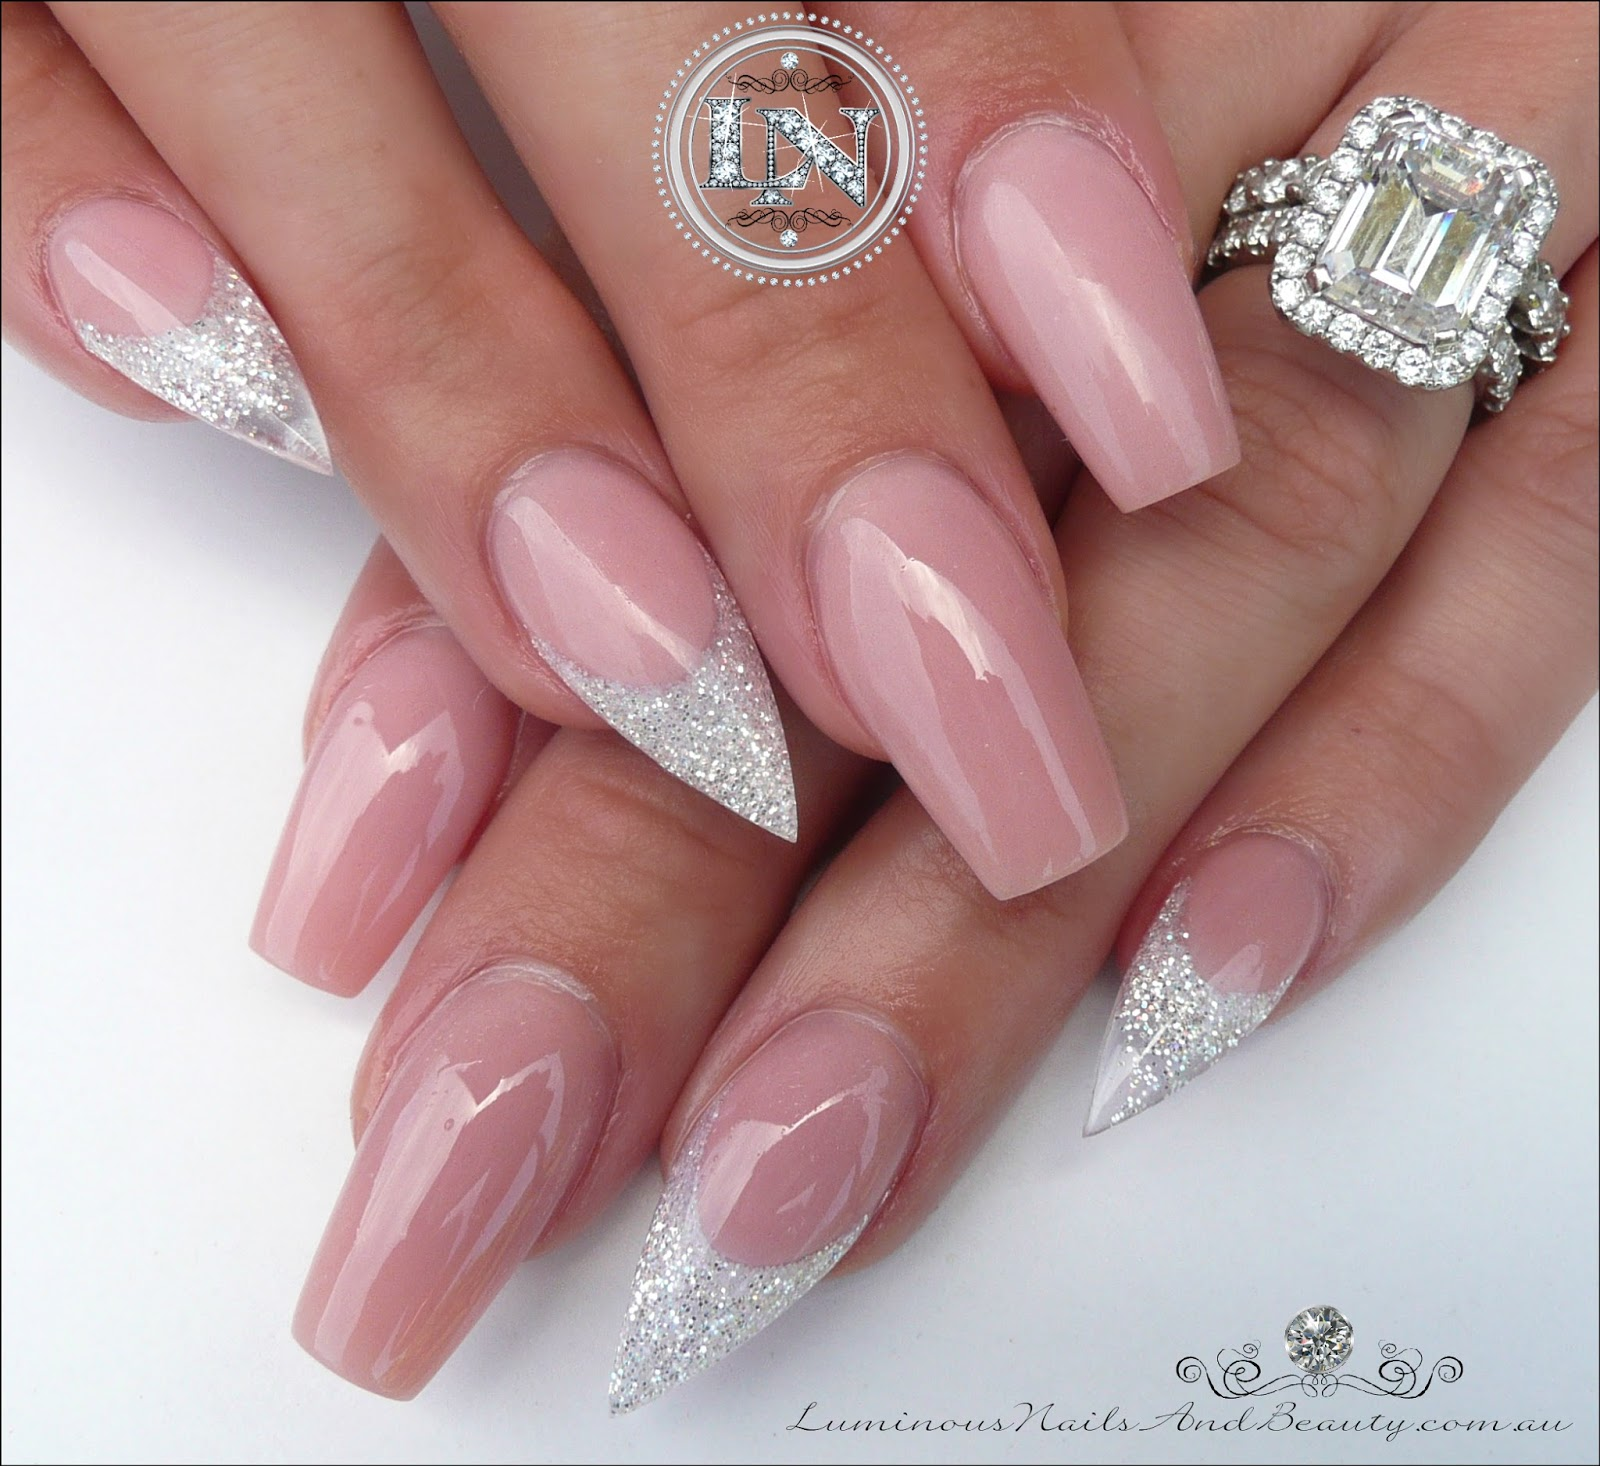 Gorgeous Acrylic Nails With Sparkly White Glitter